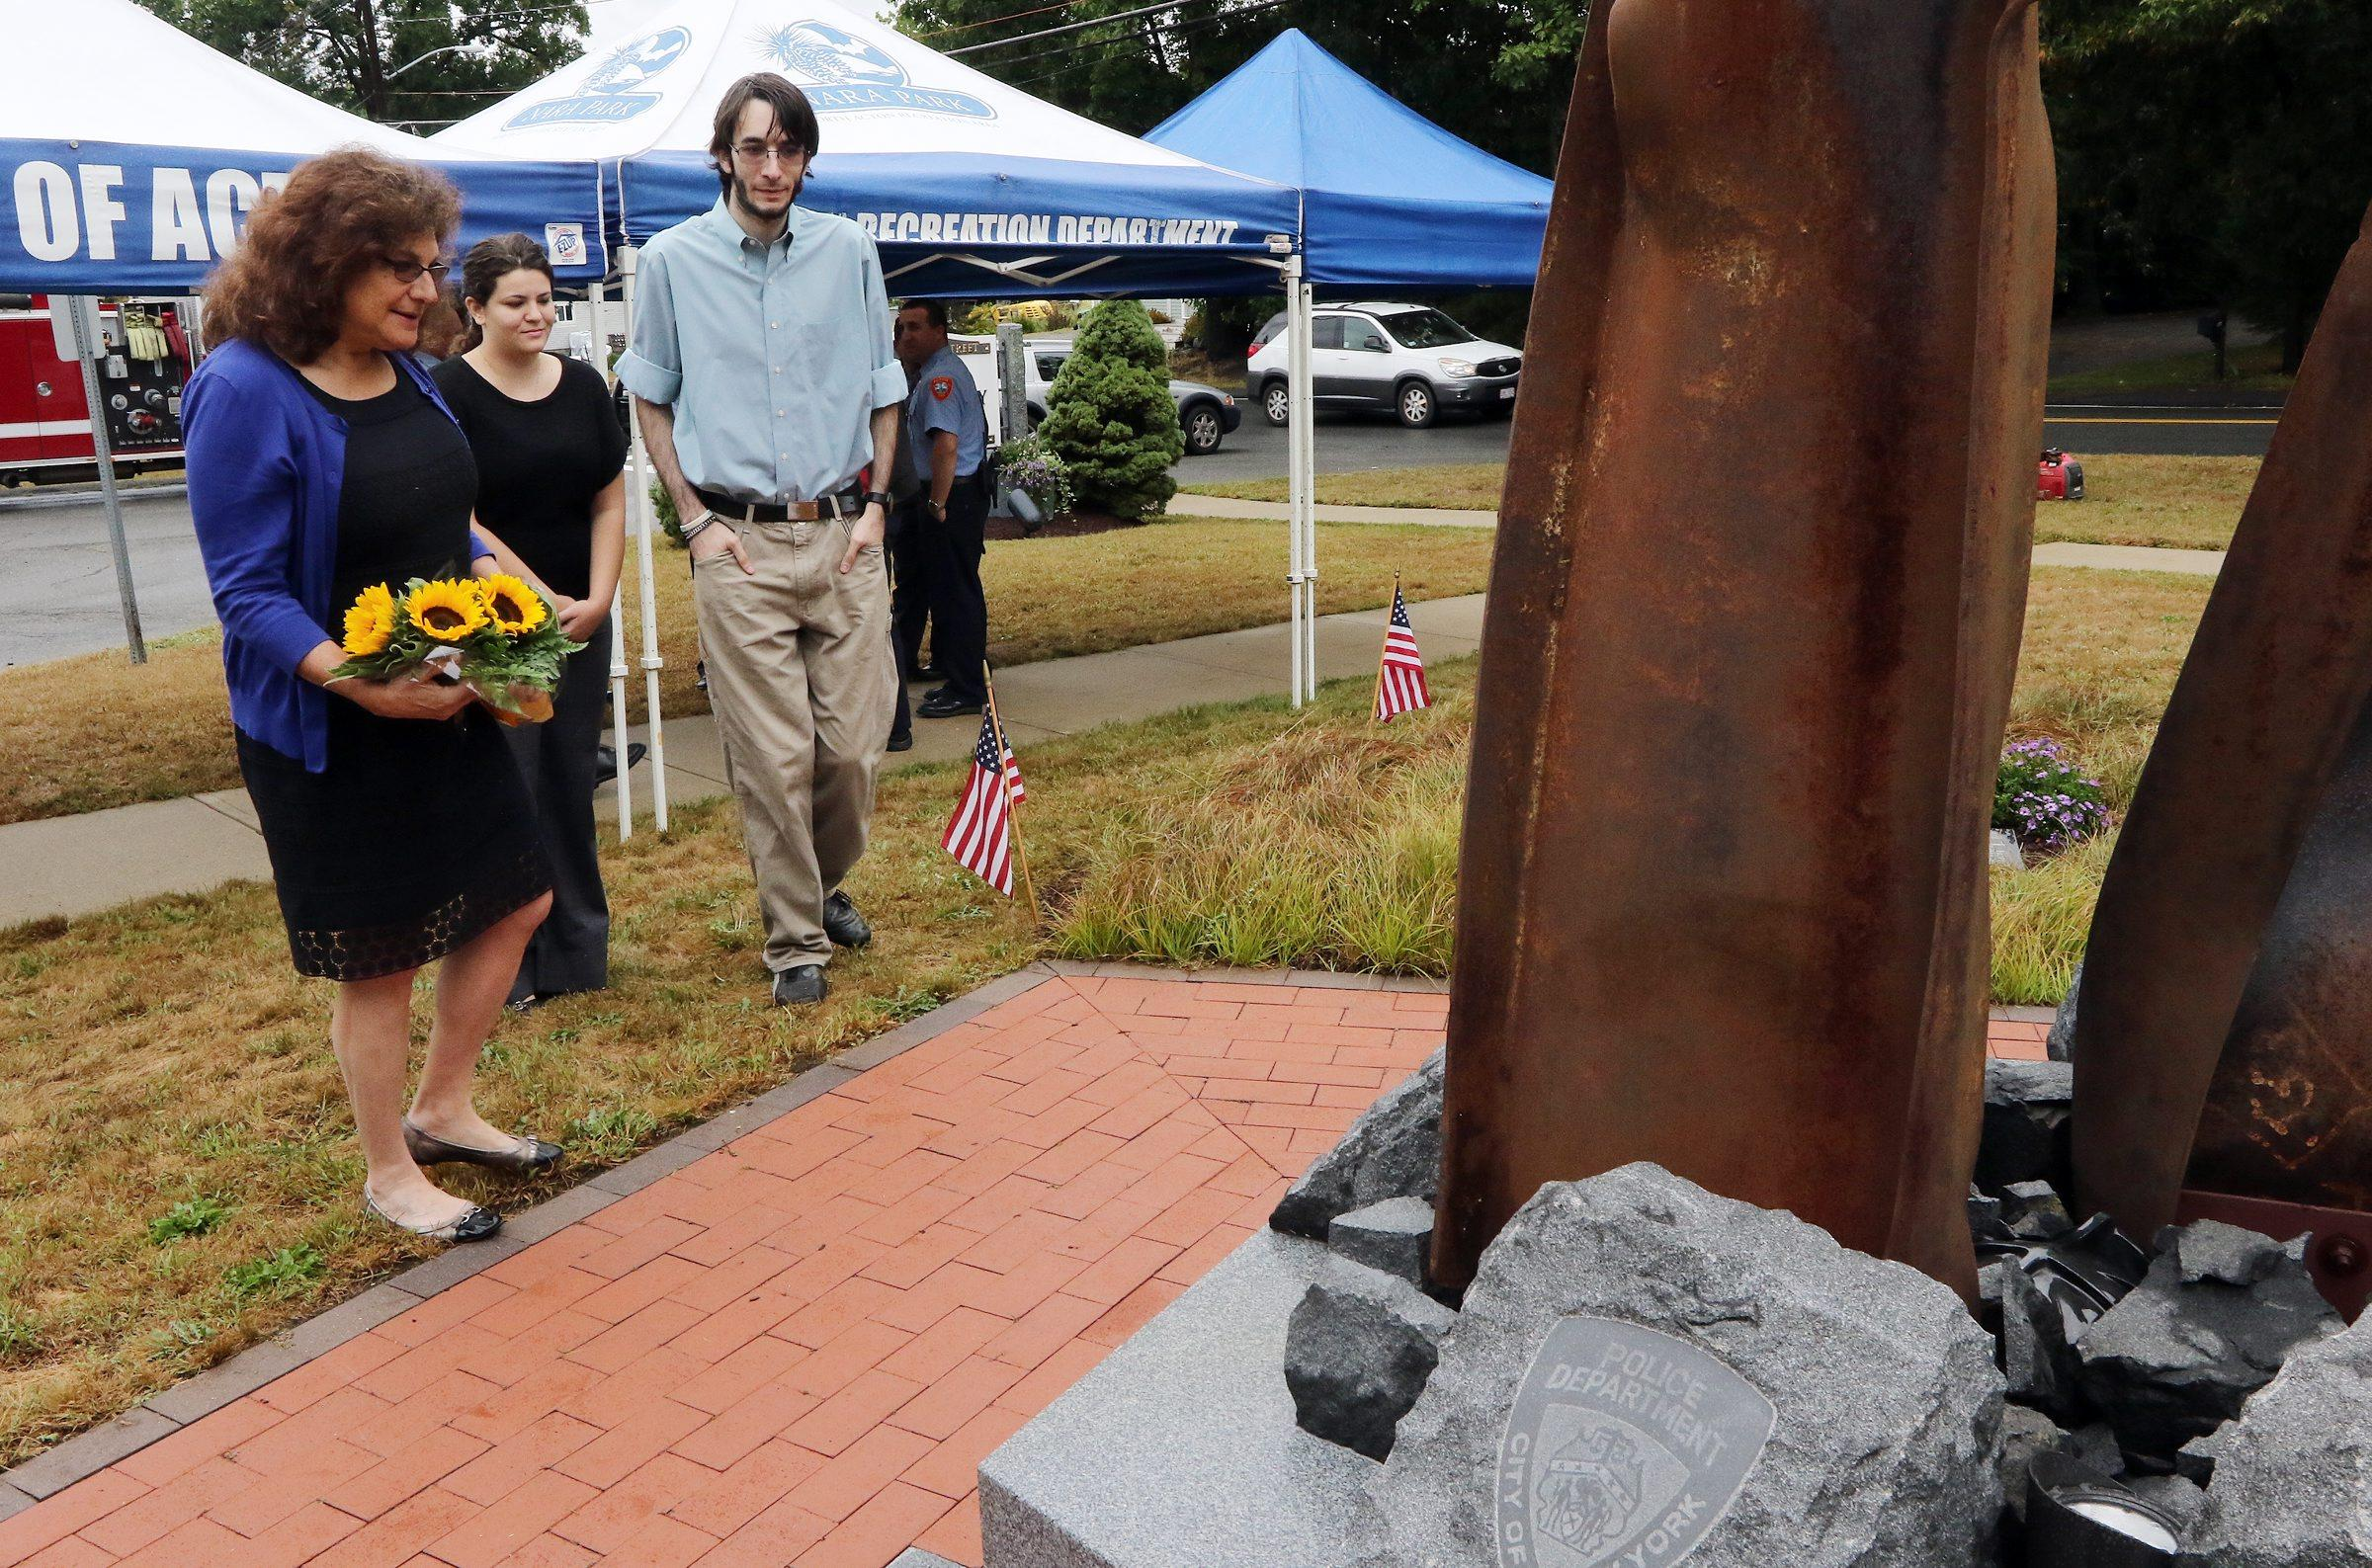 Lauren Rosenzweig Morton, the widow of 9/11 victim Philip Rosenzweig, attends a remembrance ceremony at the Acton Sept. 11 memorial in 2015, accompanied by her son and daughter-in-law.